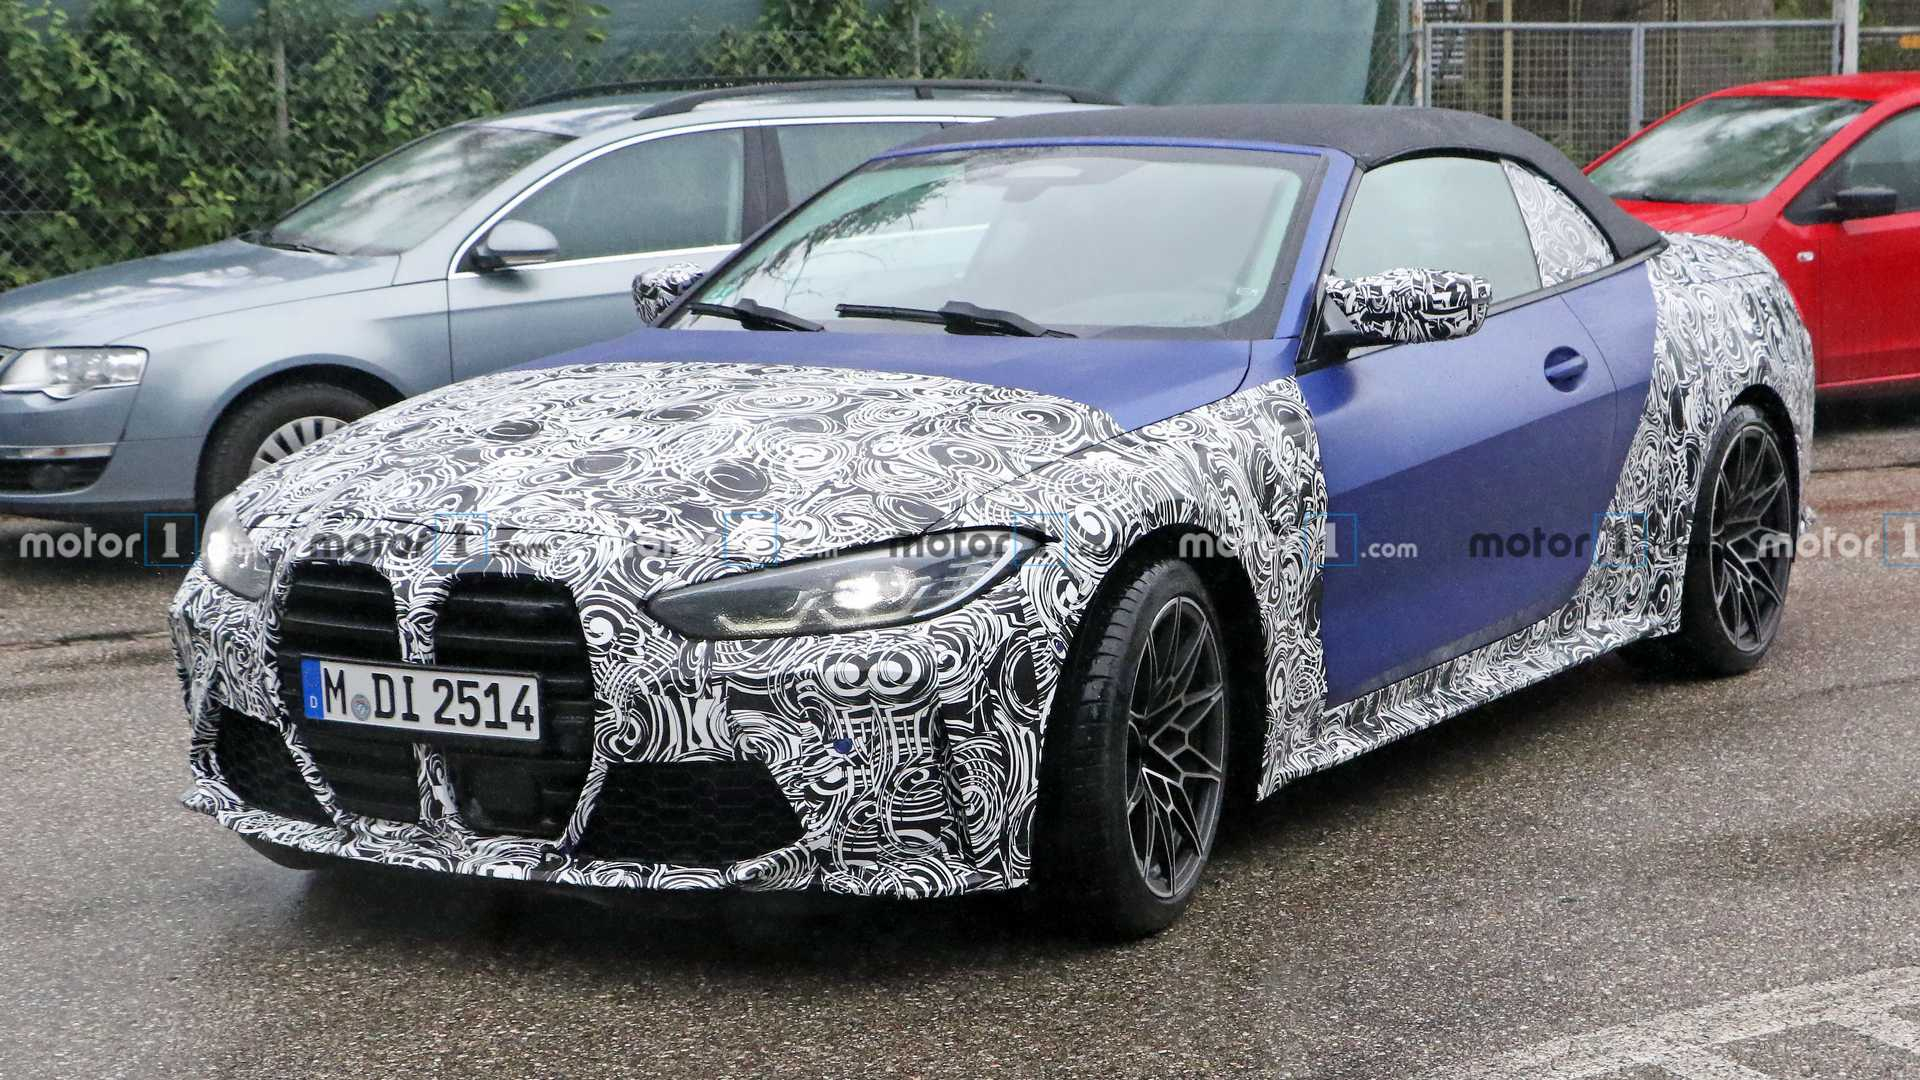 2022 BMW M4 Convertible Spied With Predictably Controversial ...